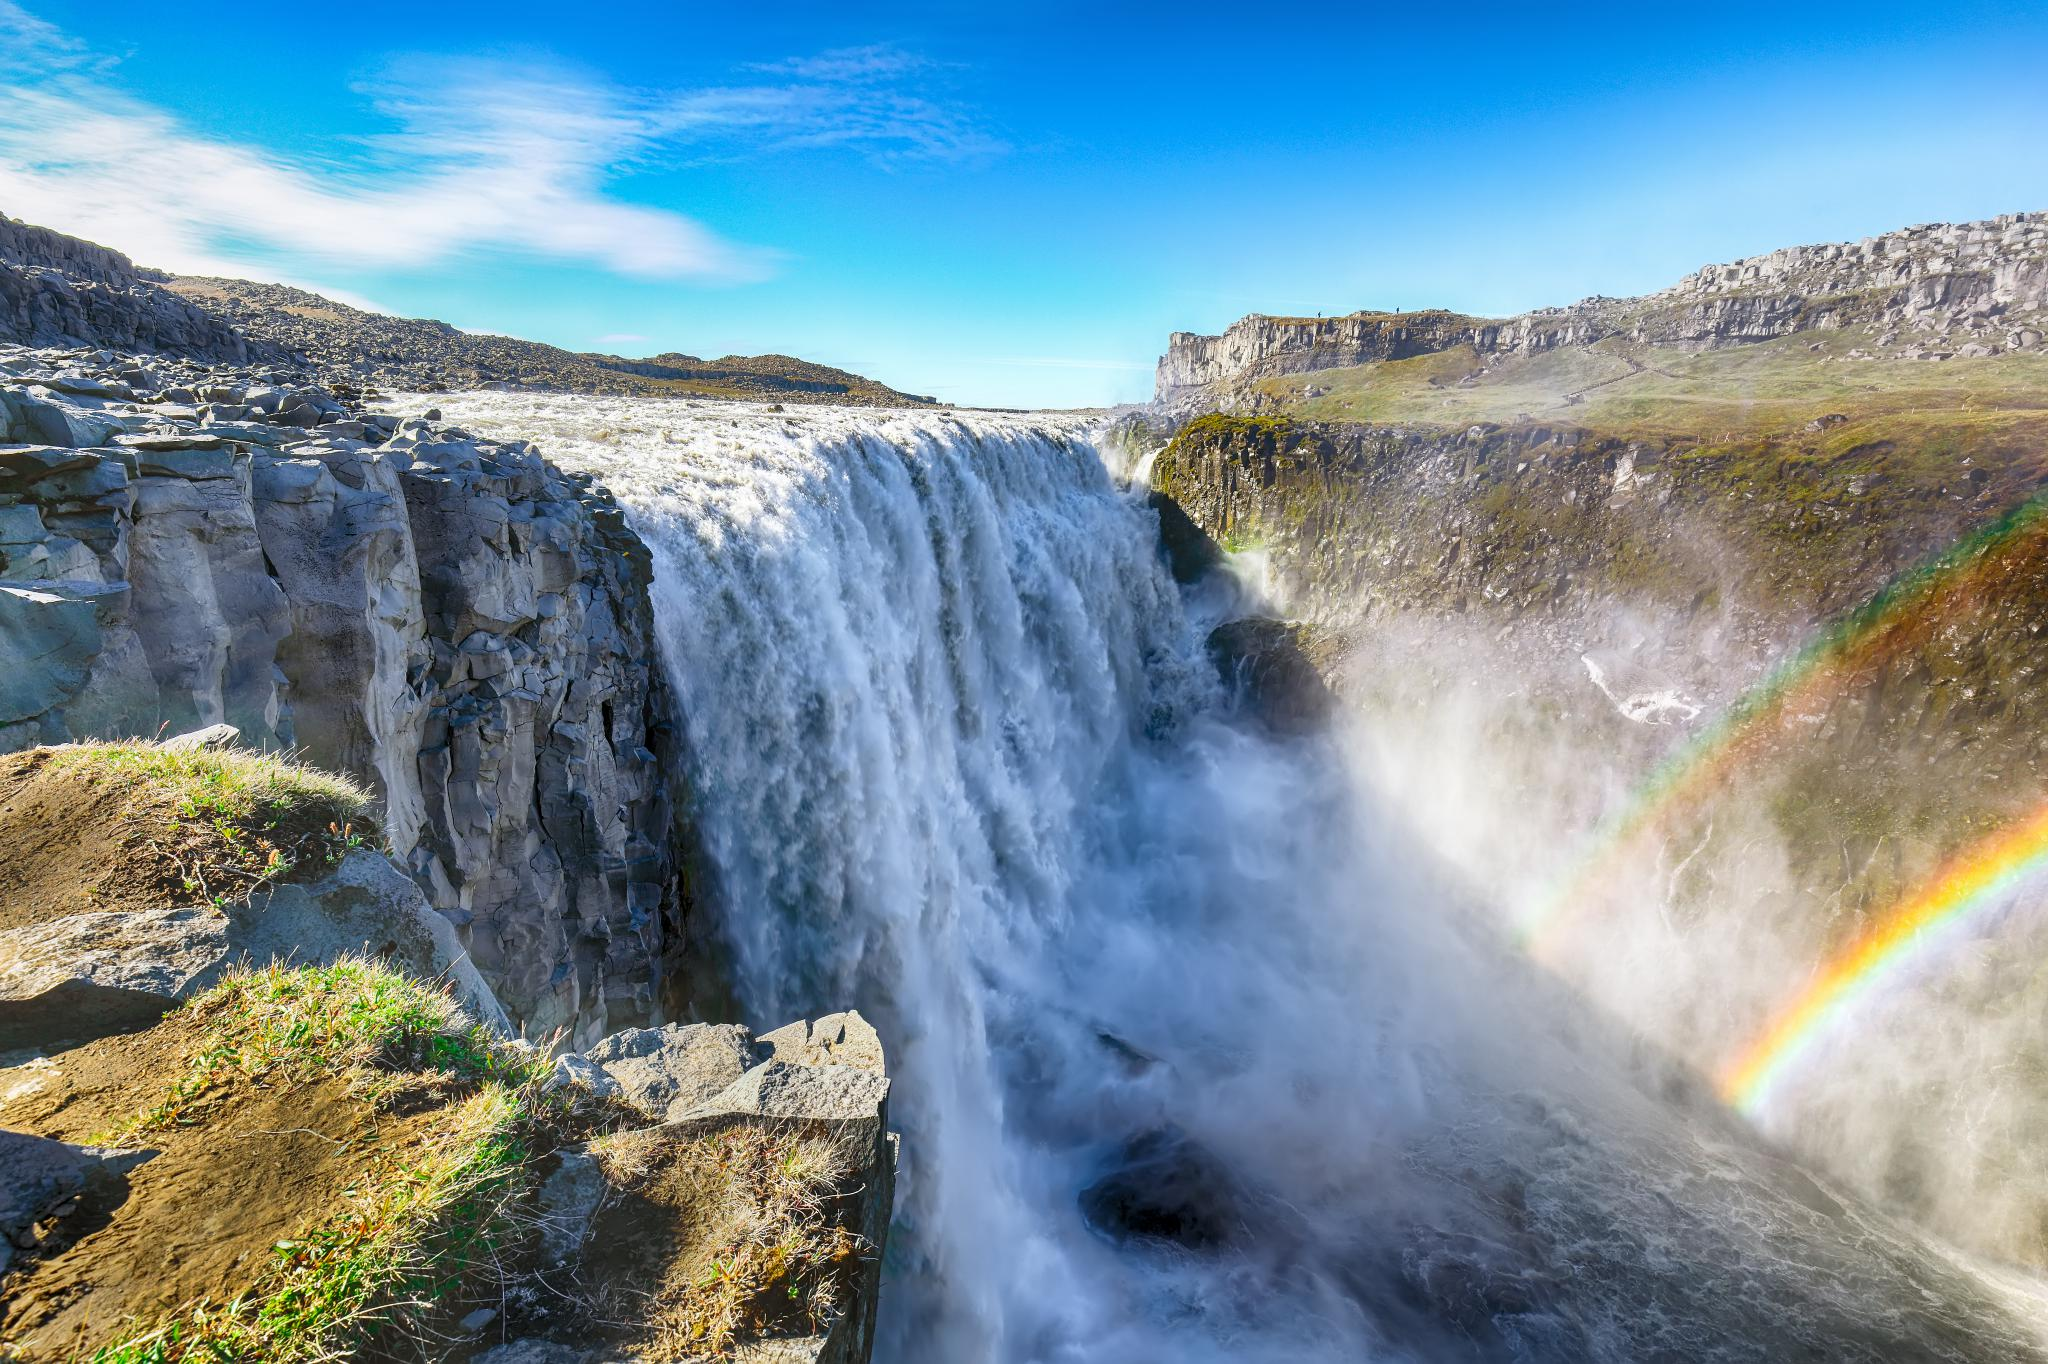 The most powerful waterfall in Europe called Dettifoss